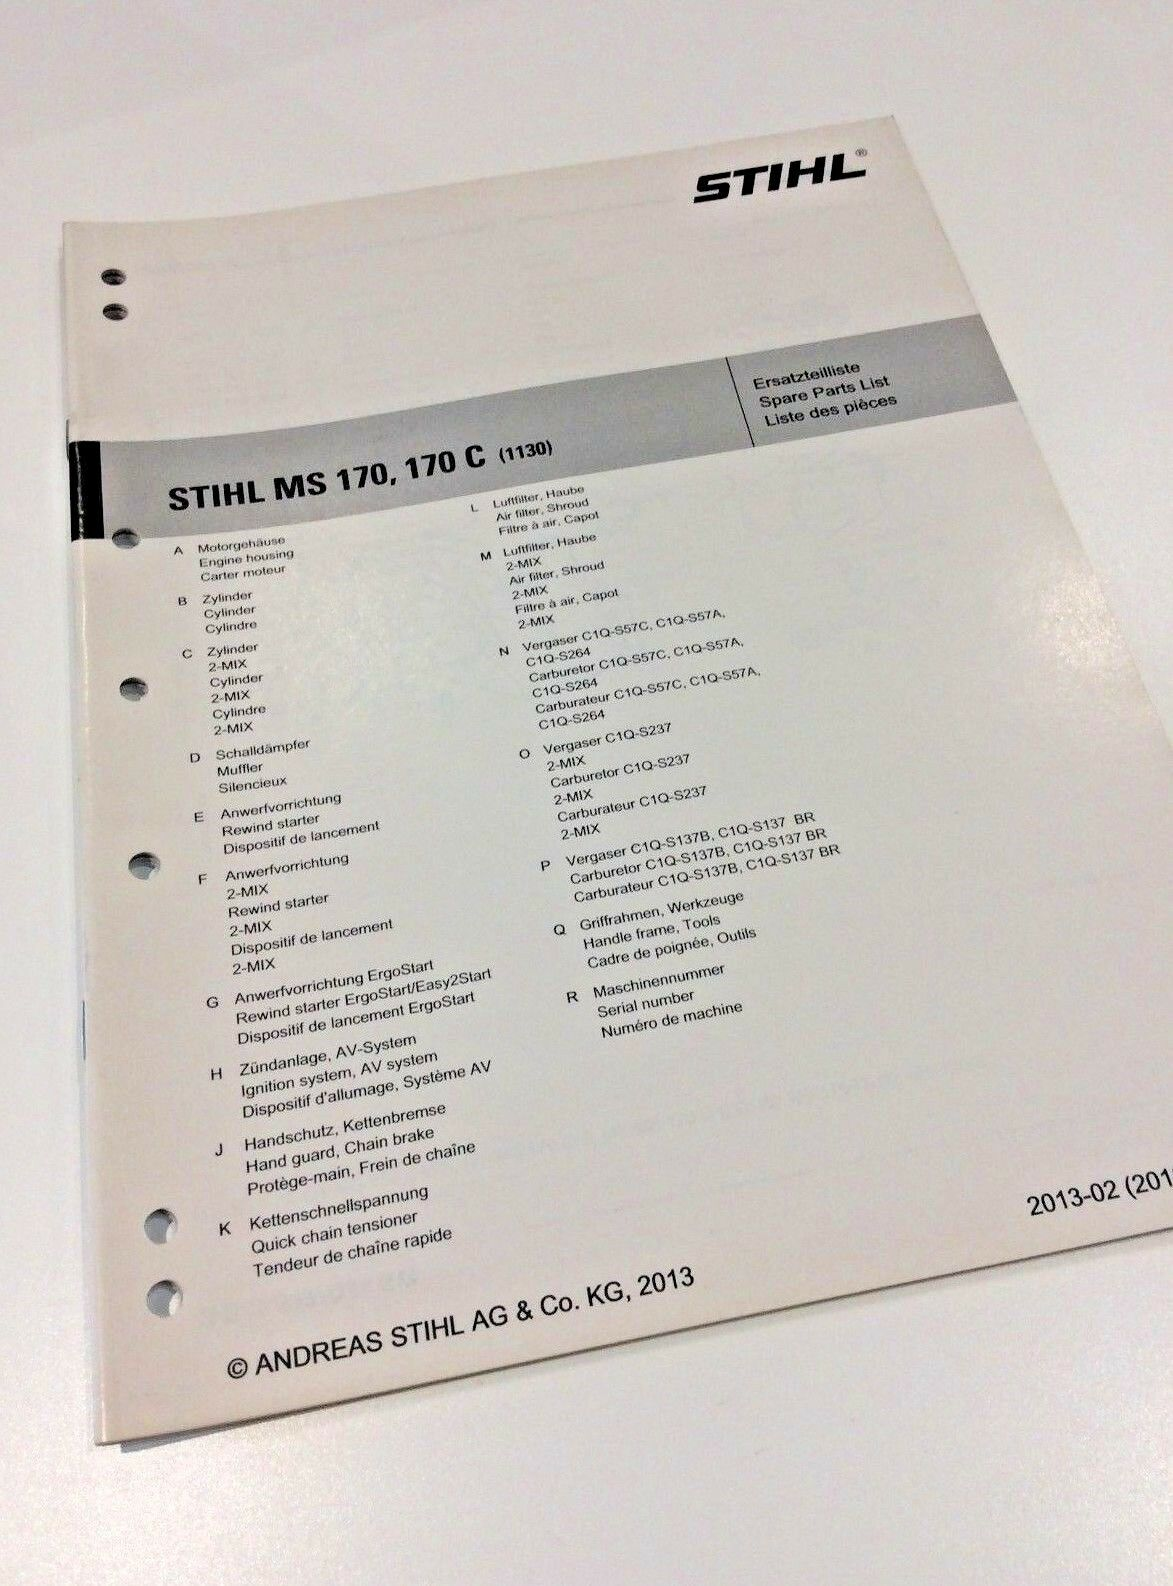 Stihl Ms170 Spare Parts List | Cardbk co